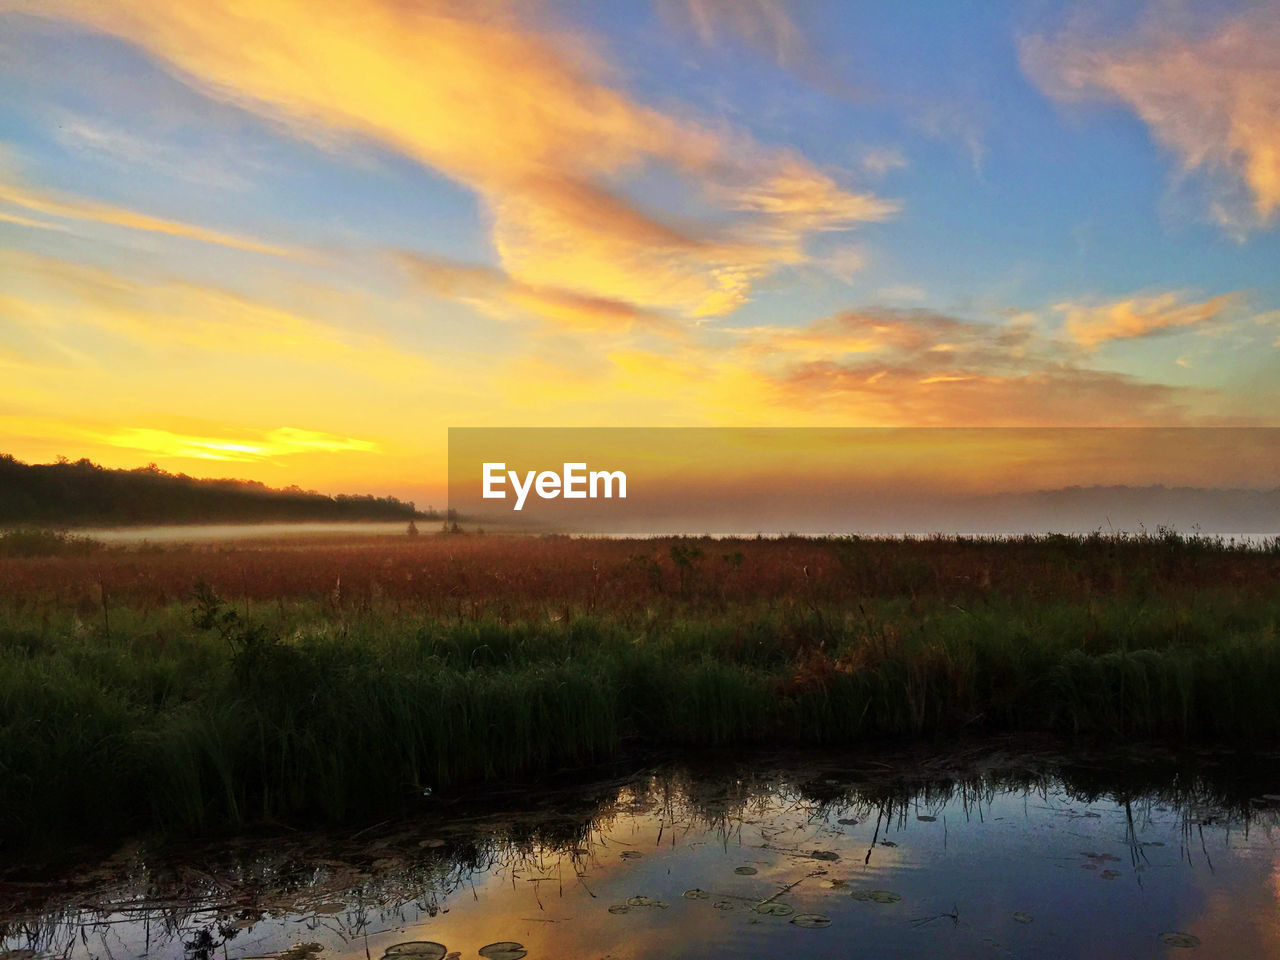 sunset, tranquil scene, nature, scenics, tranquility, beauty in nature, sky, landscape, reflection, lake, grass, water, idyllic, outdoors, no people, field, silhouette, cloud - sky, growth, tree, day